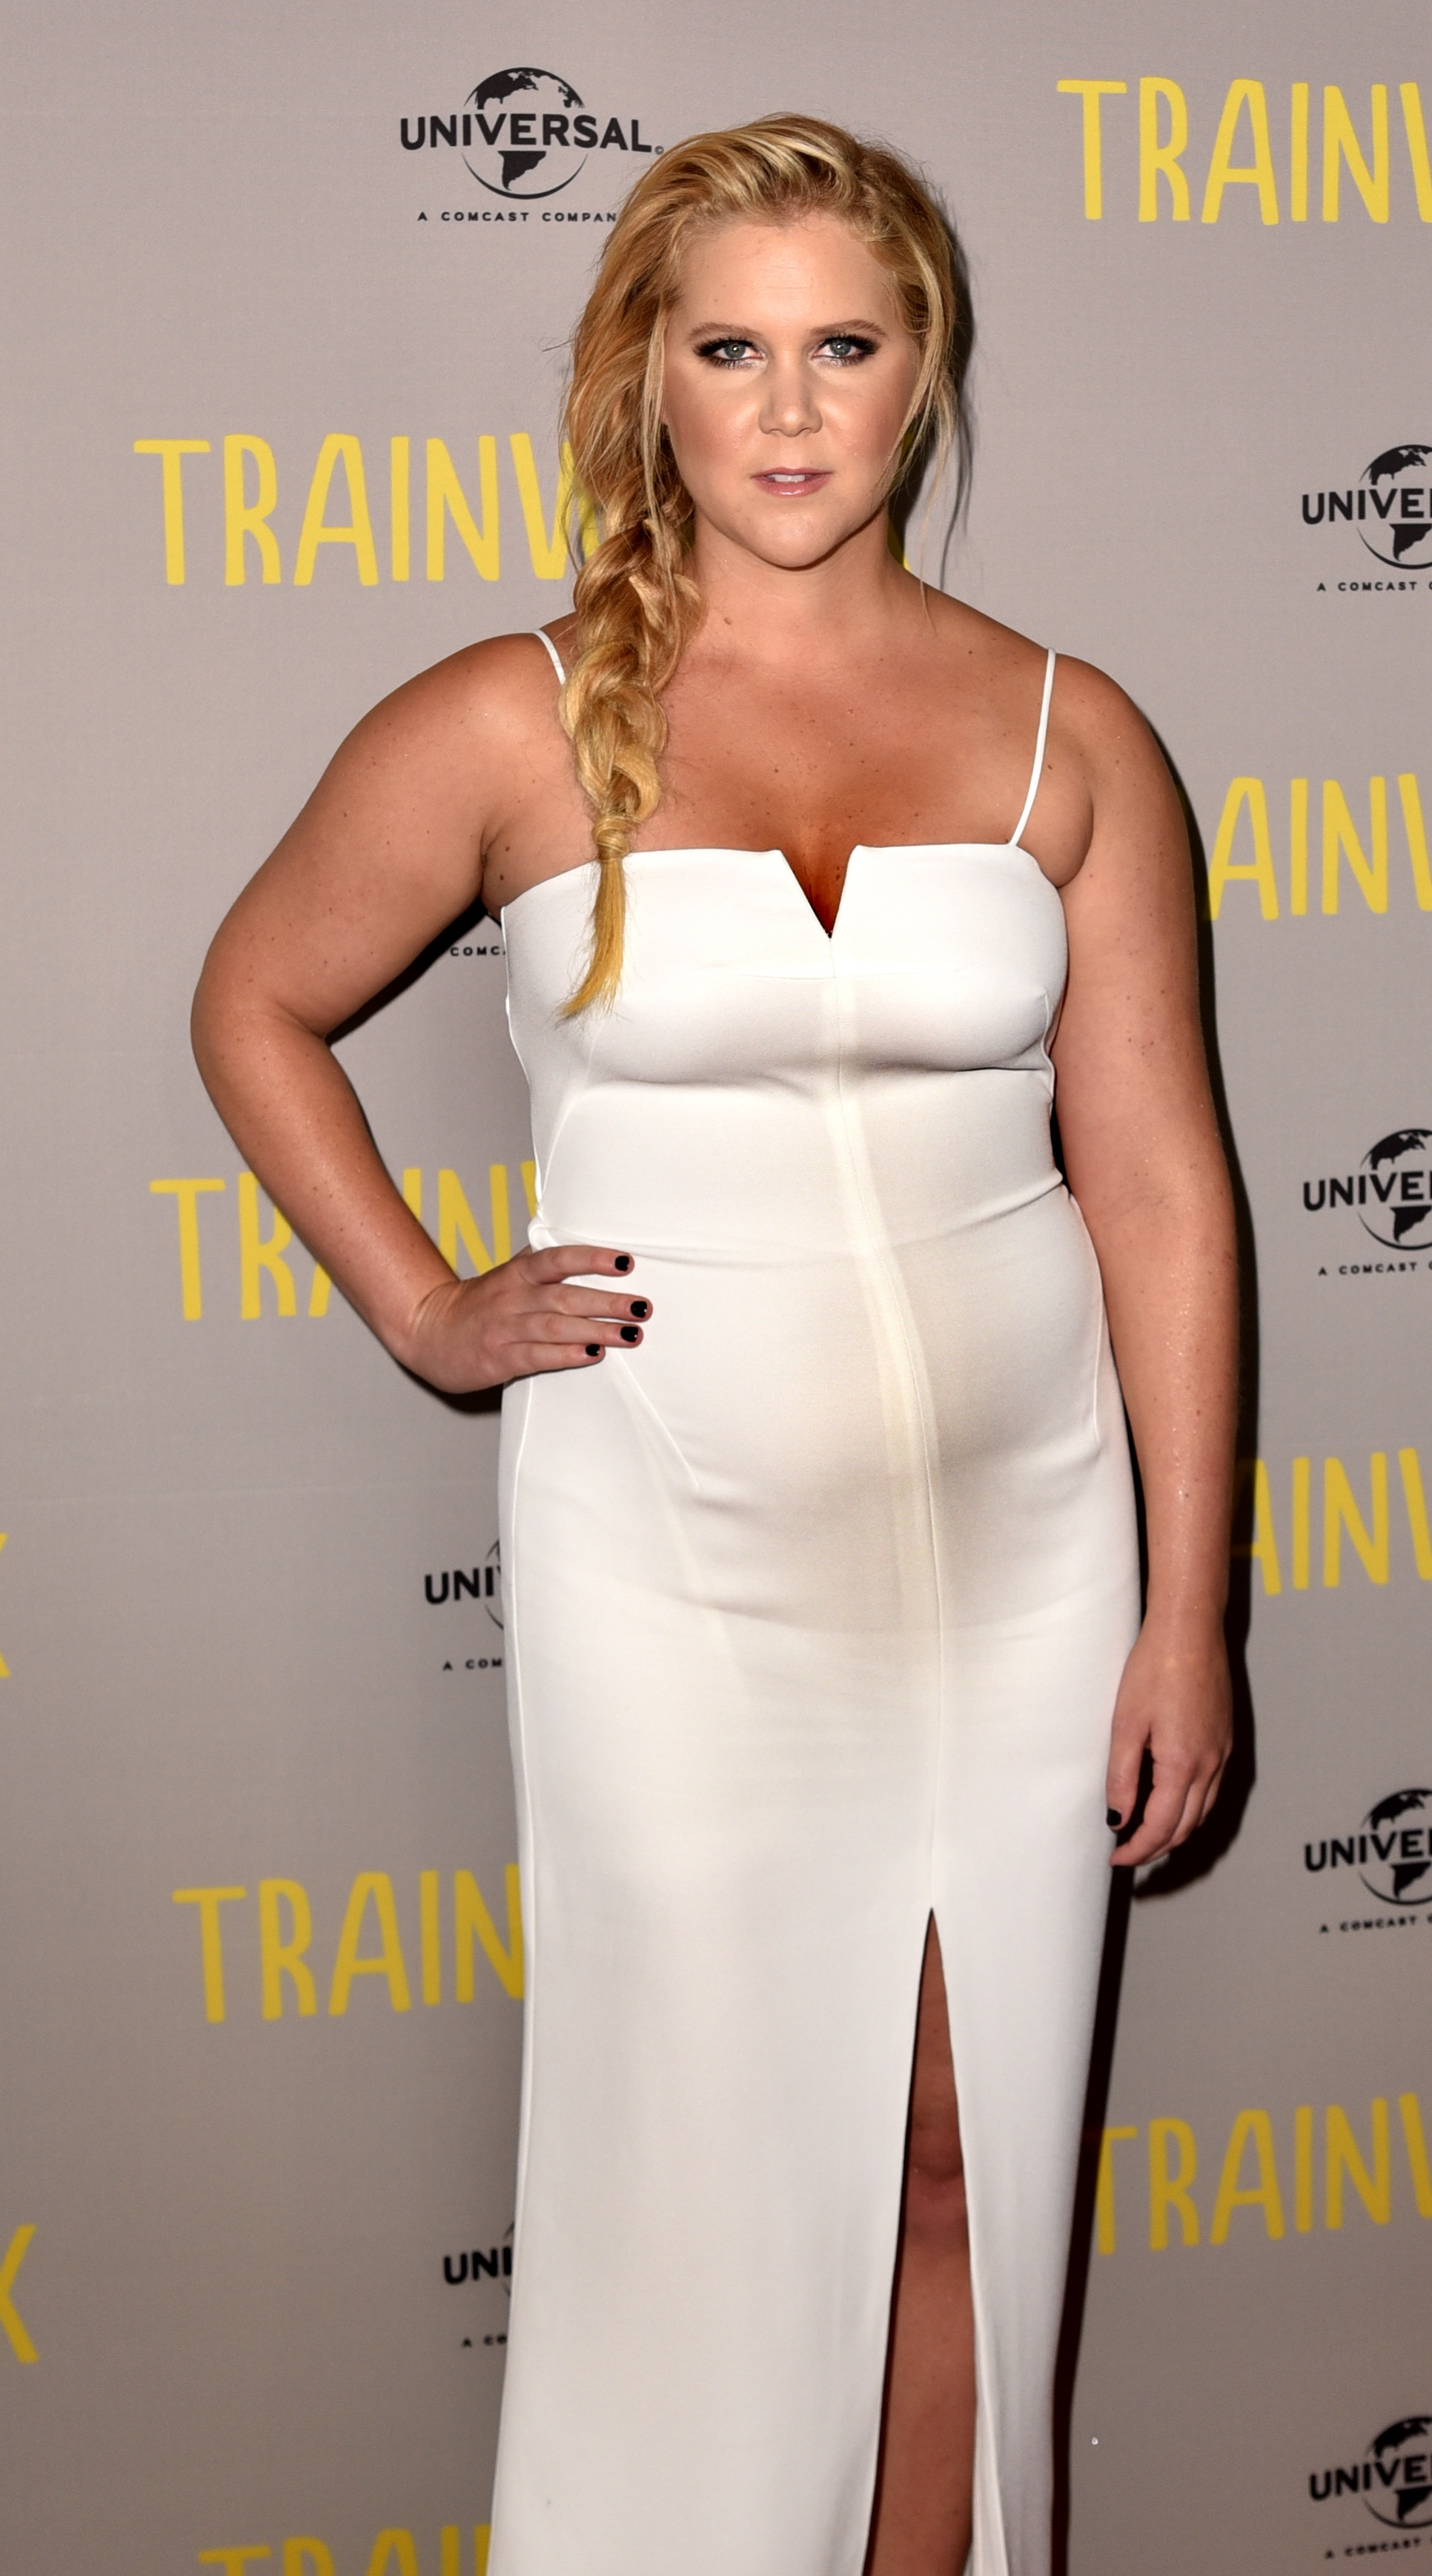 Amy Schumer Body Image